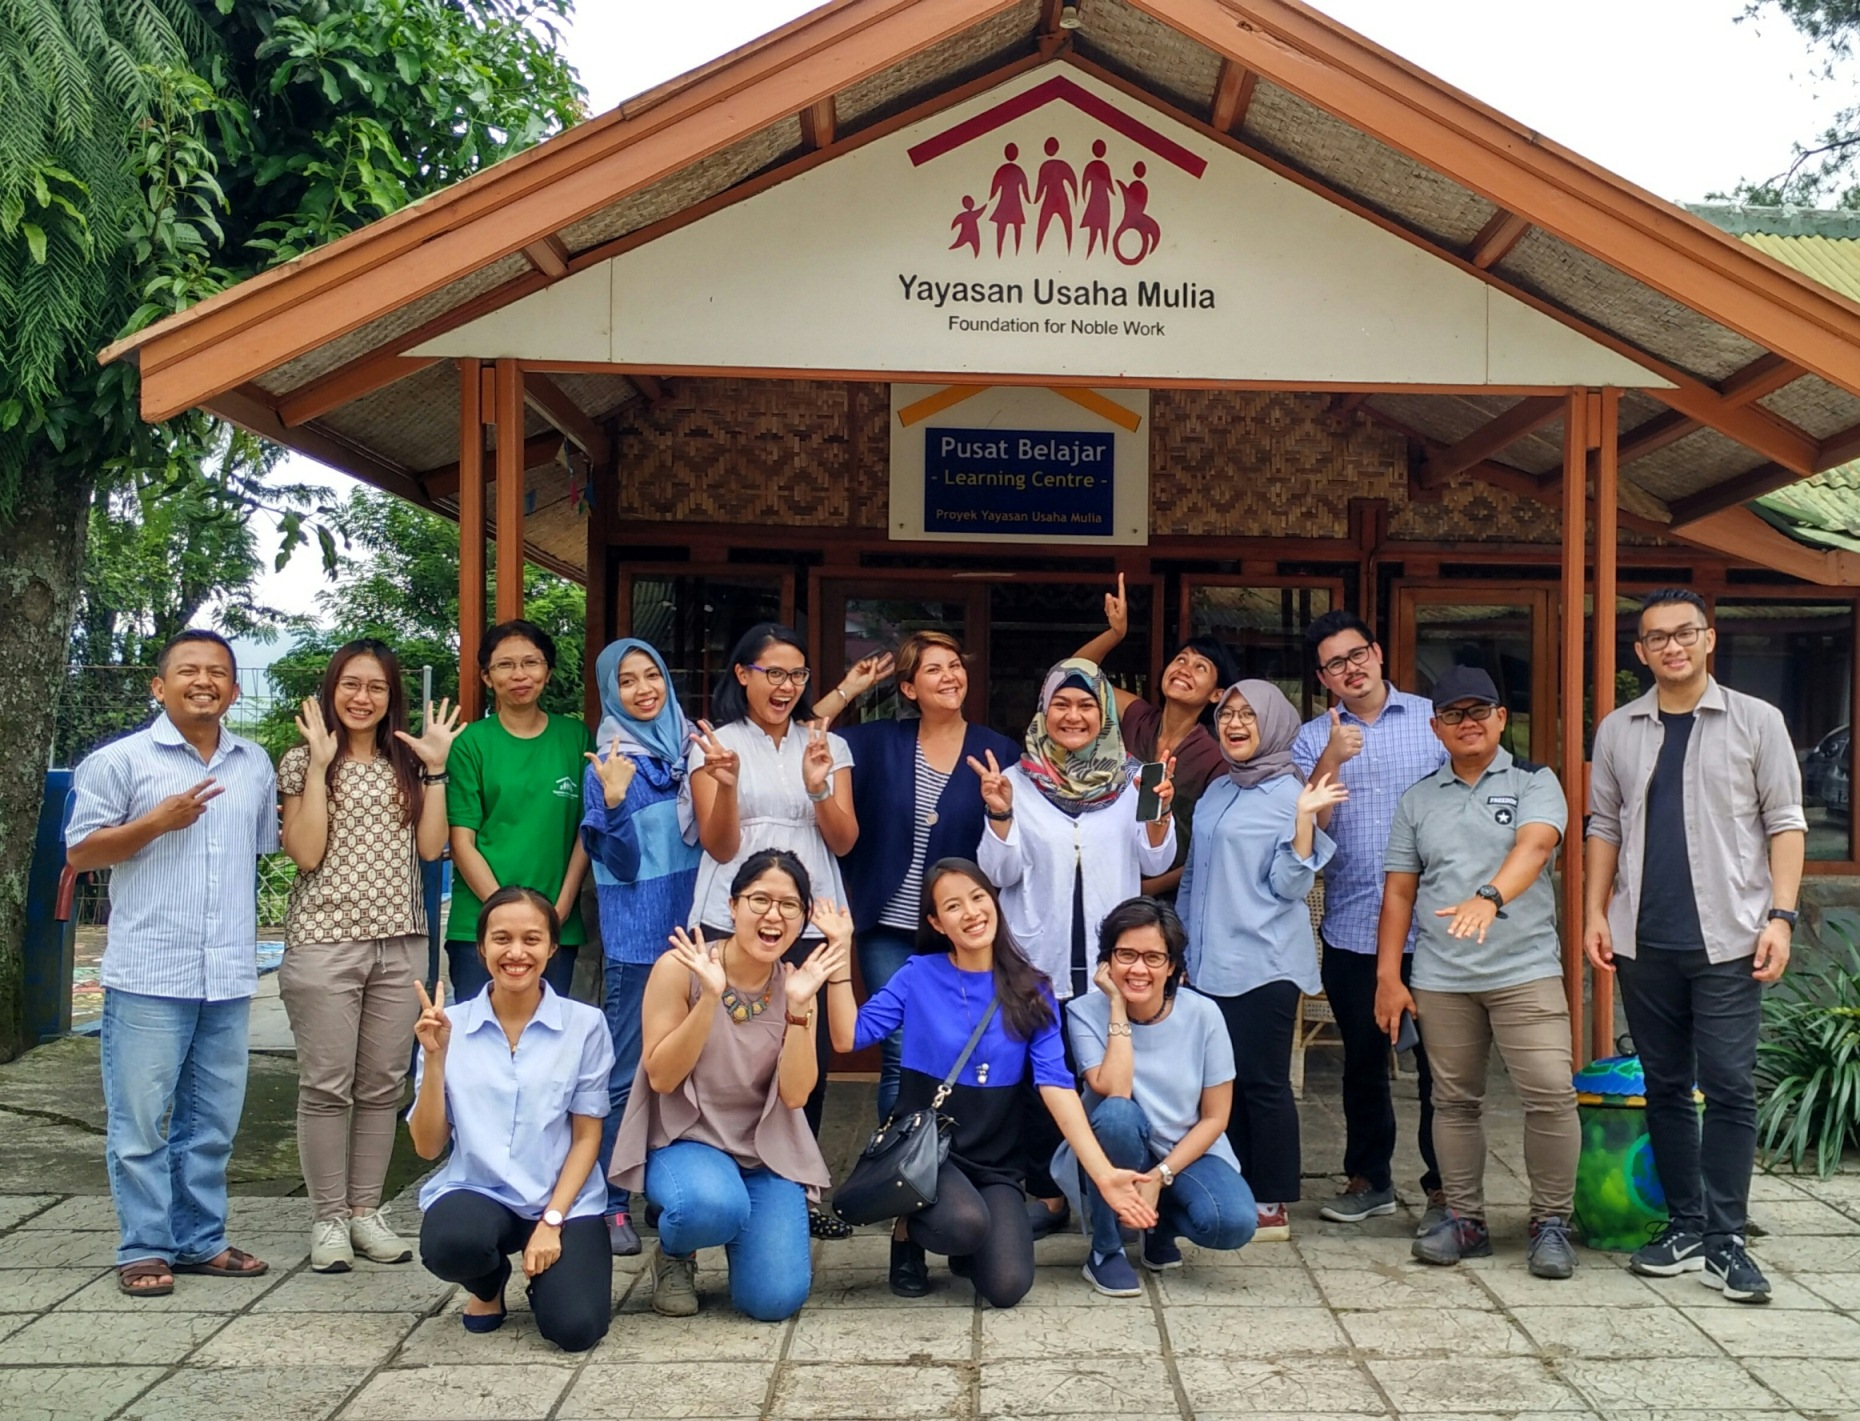 Yayasan Usaha Mulia (YUM) recently hosted a visit from Asia Philanthropy Circle (APC) and like-minded education enthusiasts to our community development centre on December 12th.